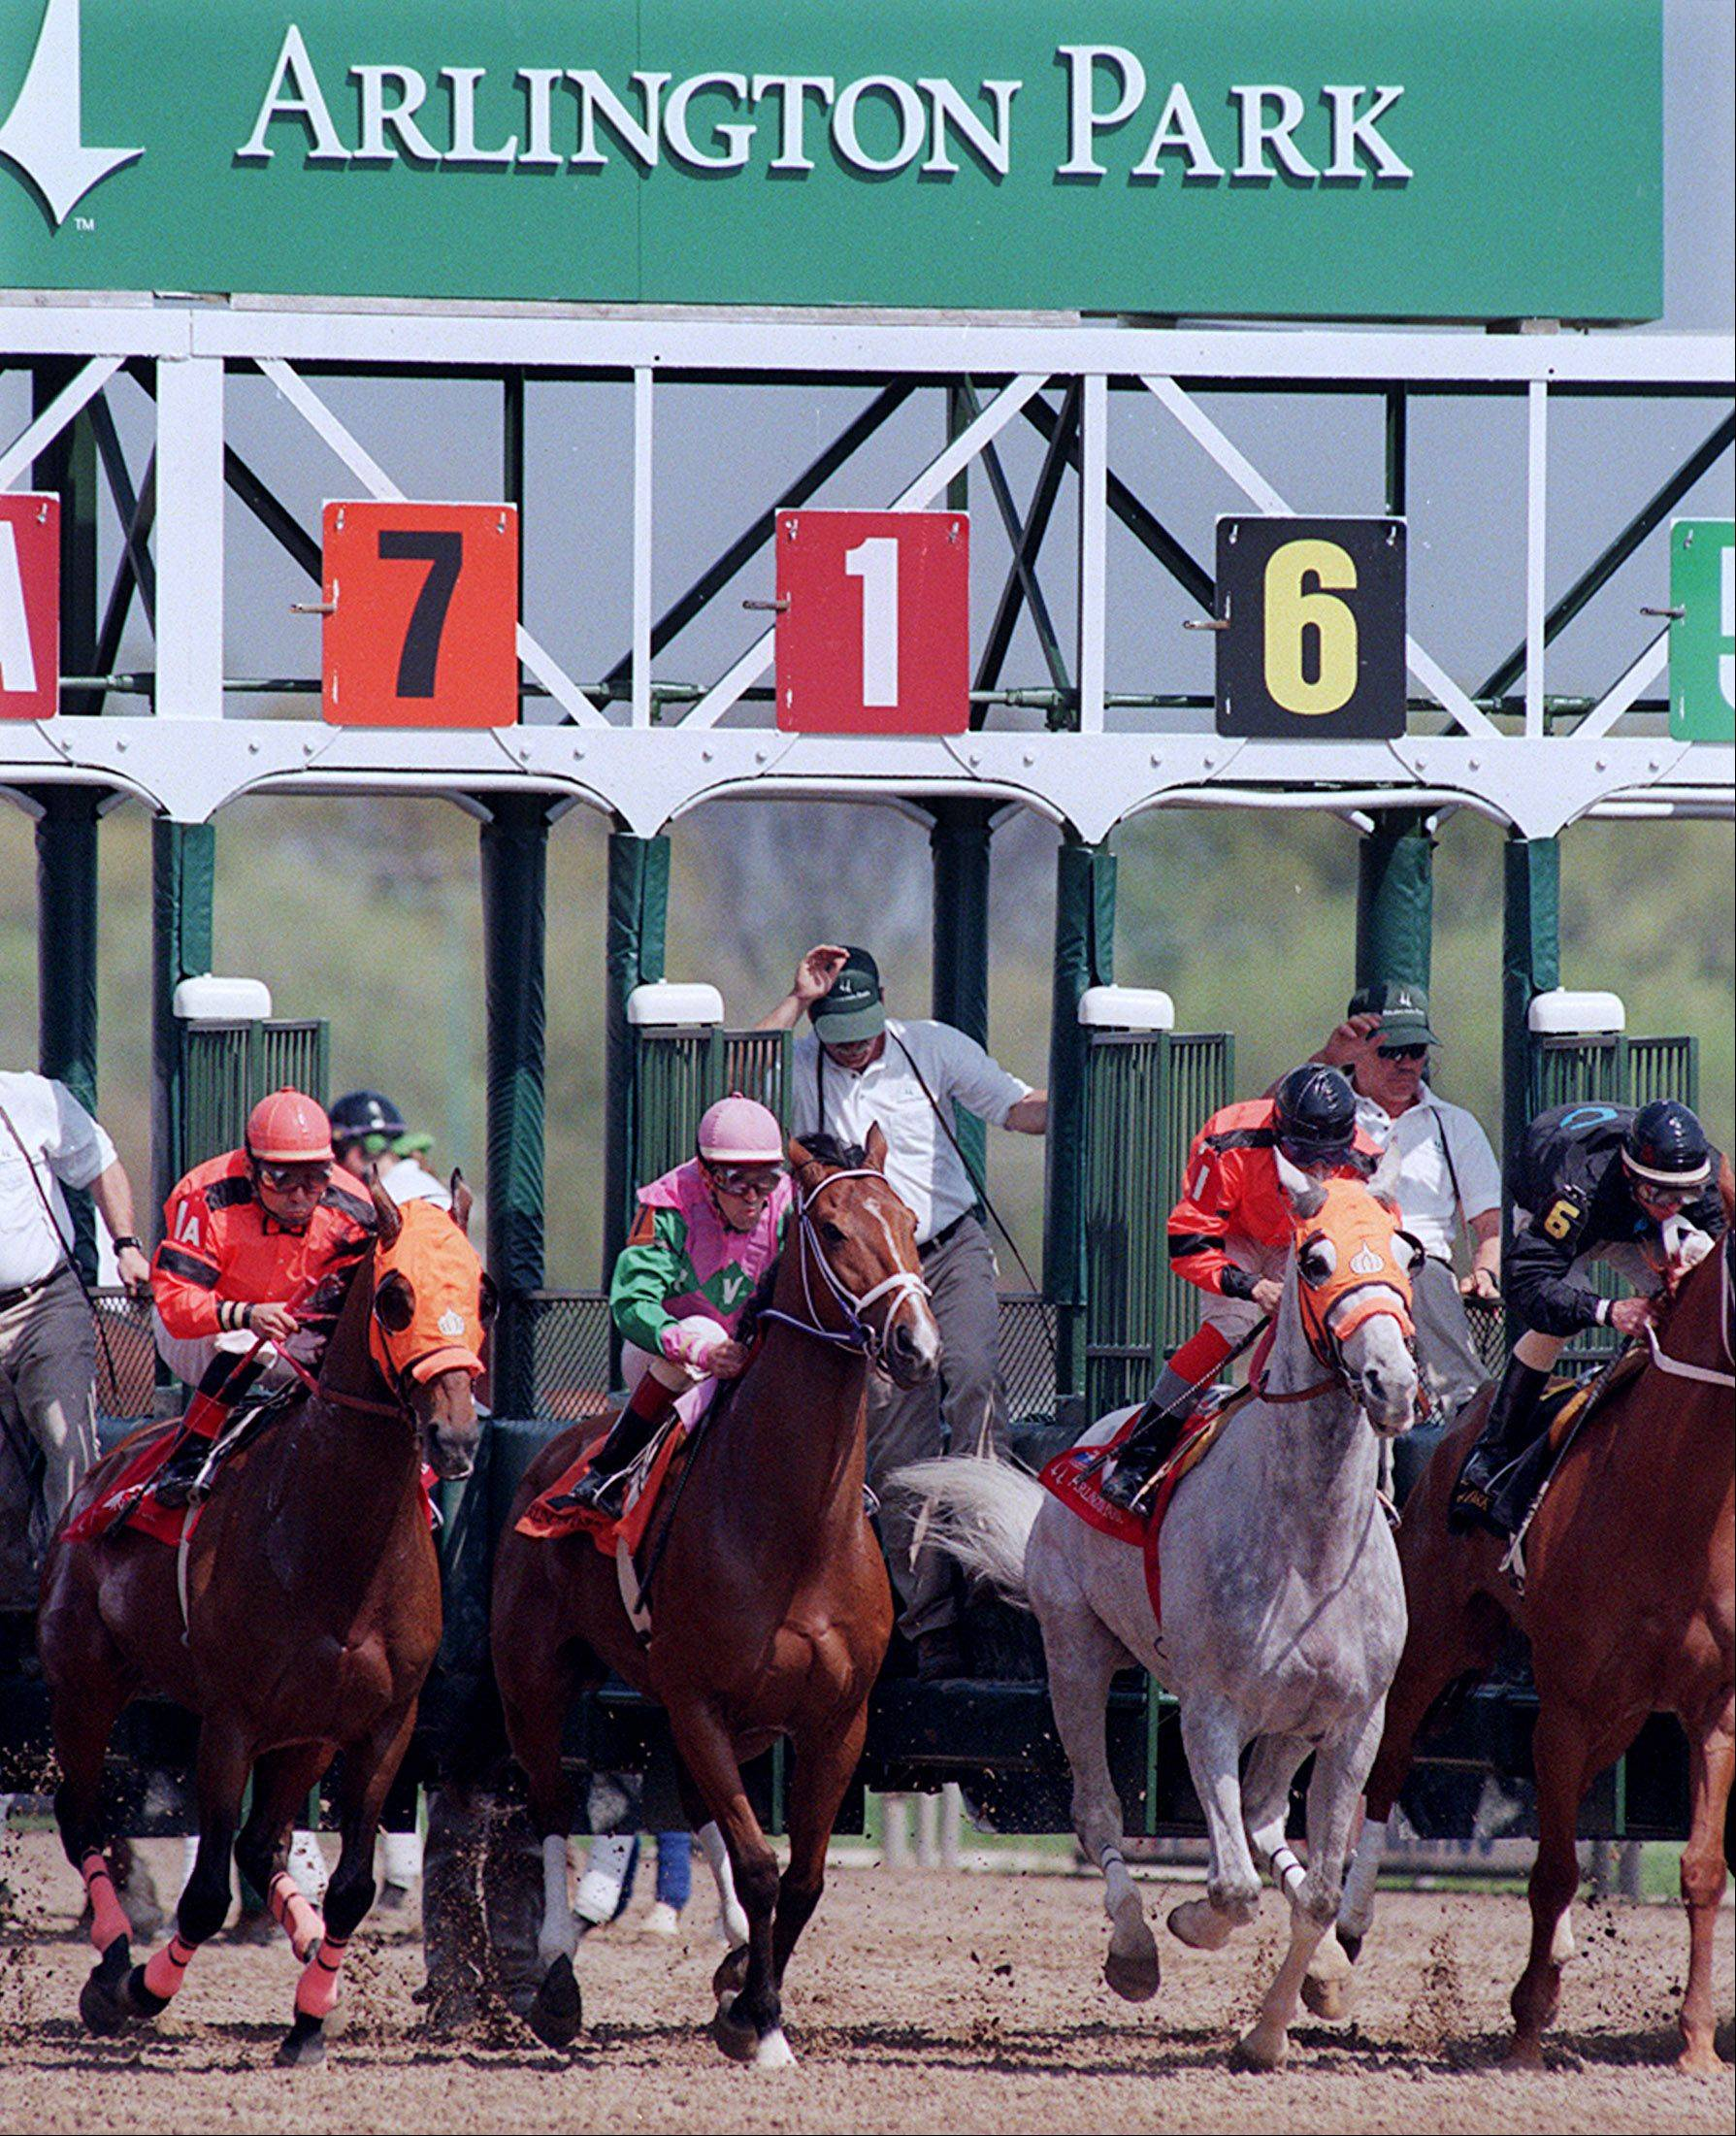 A dispute between the track and the Illinois Thoroughbred Horsmen's Association regarding a contract for the 2012 race meet has led Arlington officials to slash purses by 20 percent until a contract is agreed upon.